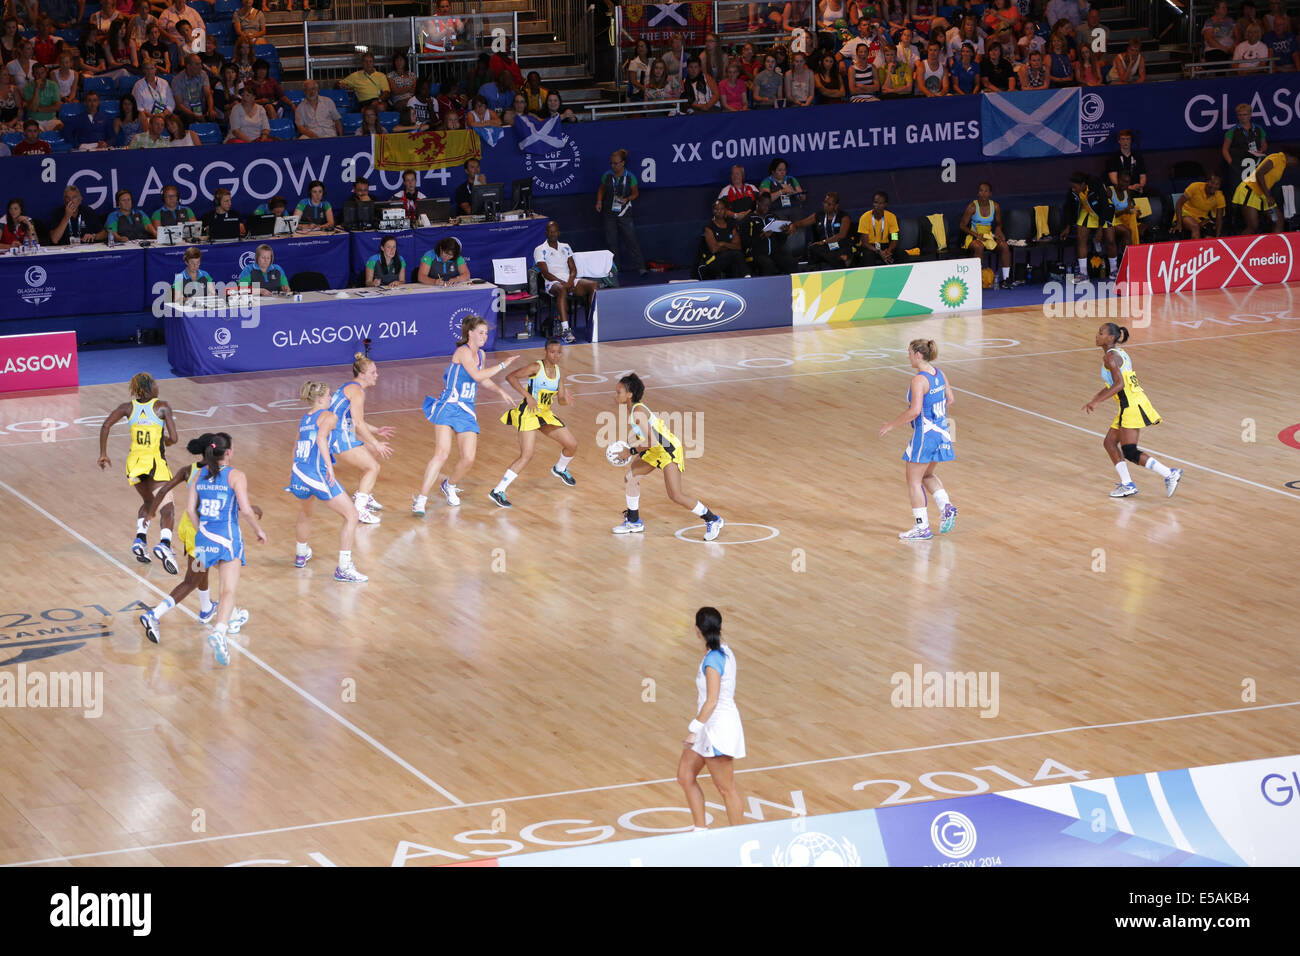 Netball Preliminary Match between Scotland and Saint Lucia at the Glasgow 2014 Commonwealth Games. Scotland win - Stock Image